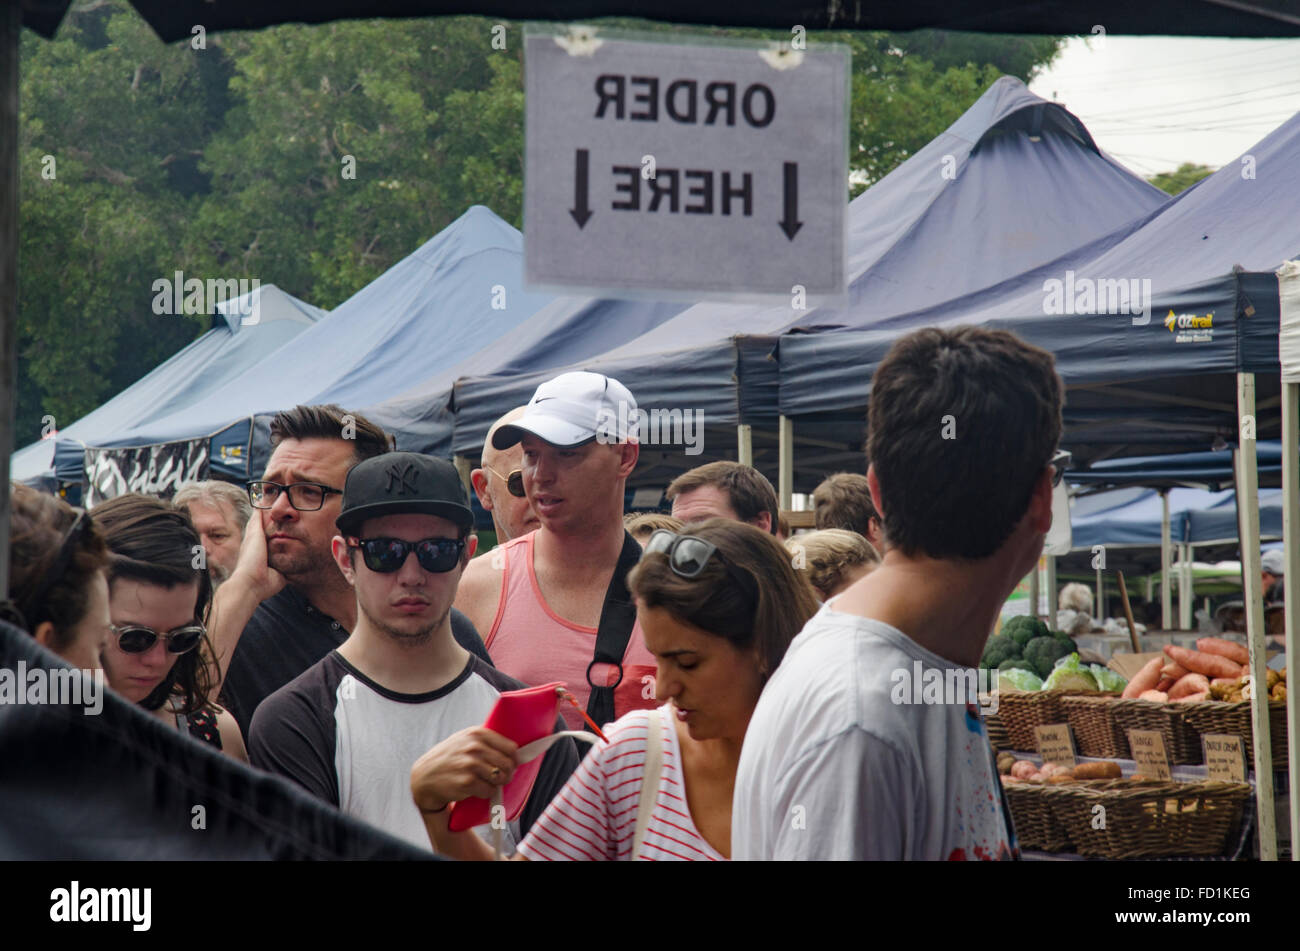 People in a que to place an order for food at a market stall - Stock Image